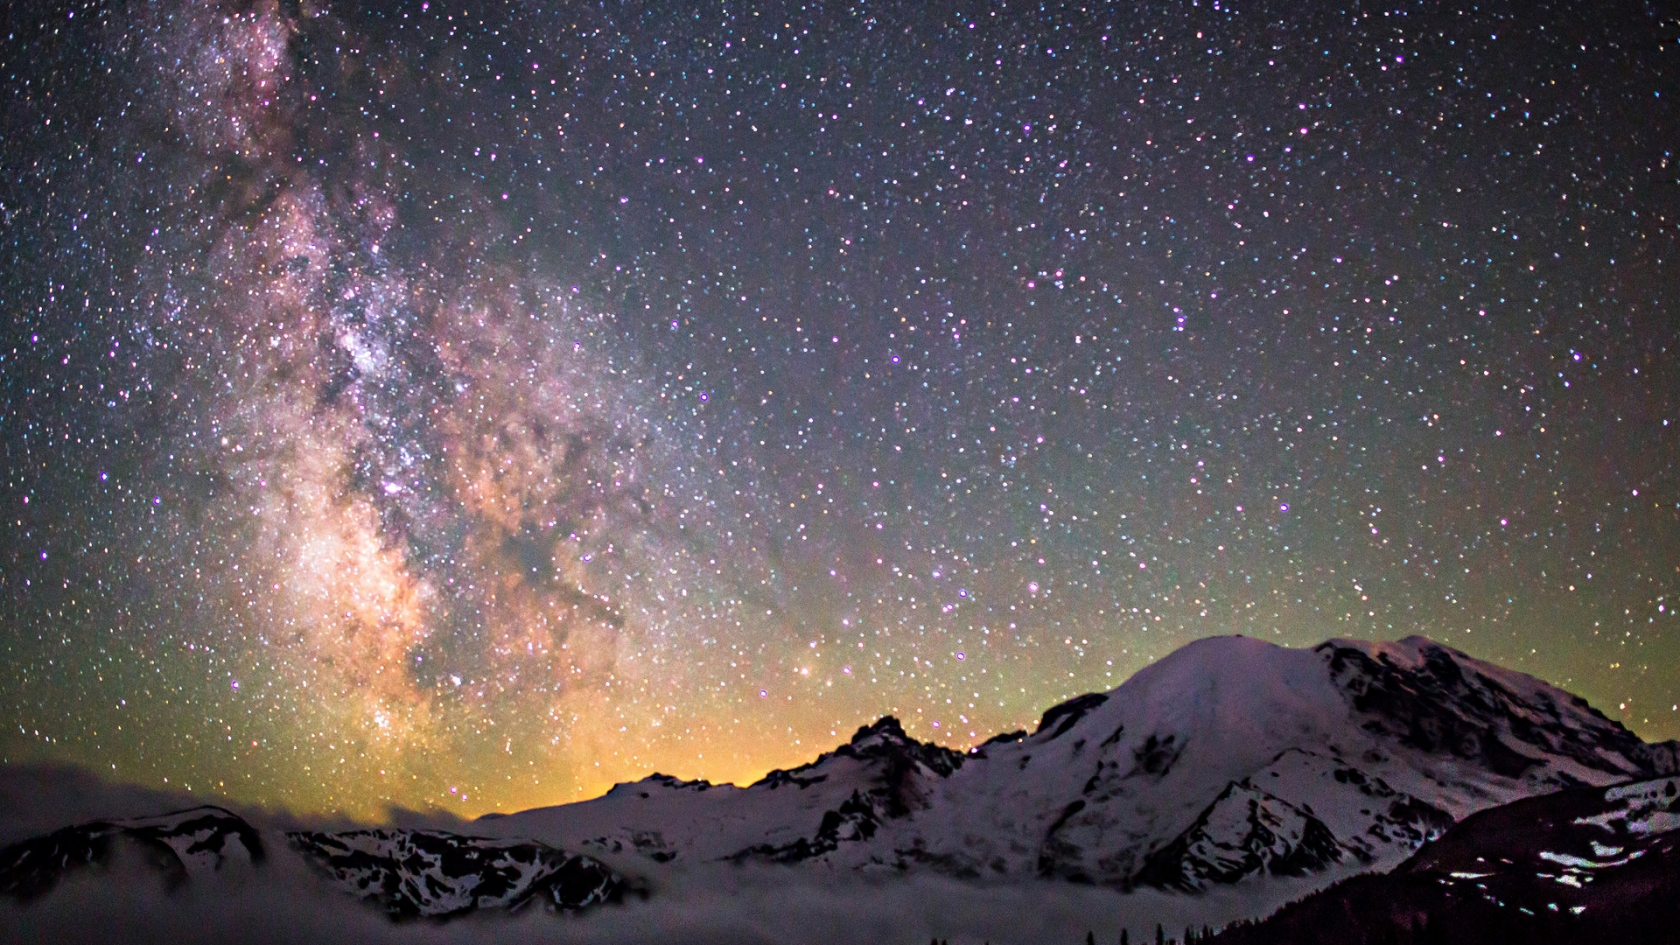 Amazing Milky Way for 1680 x 945 HDTV resolution